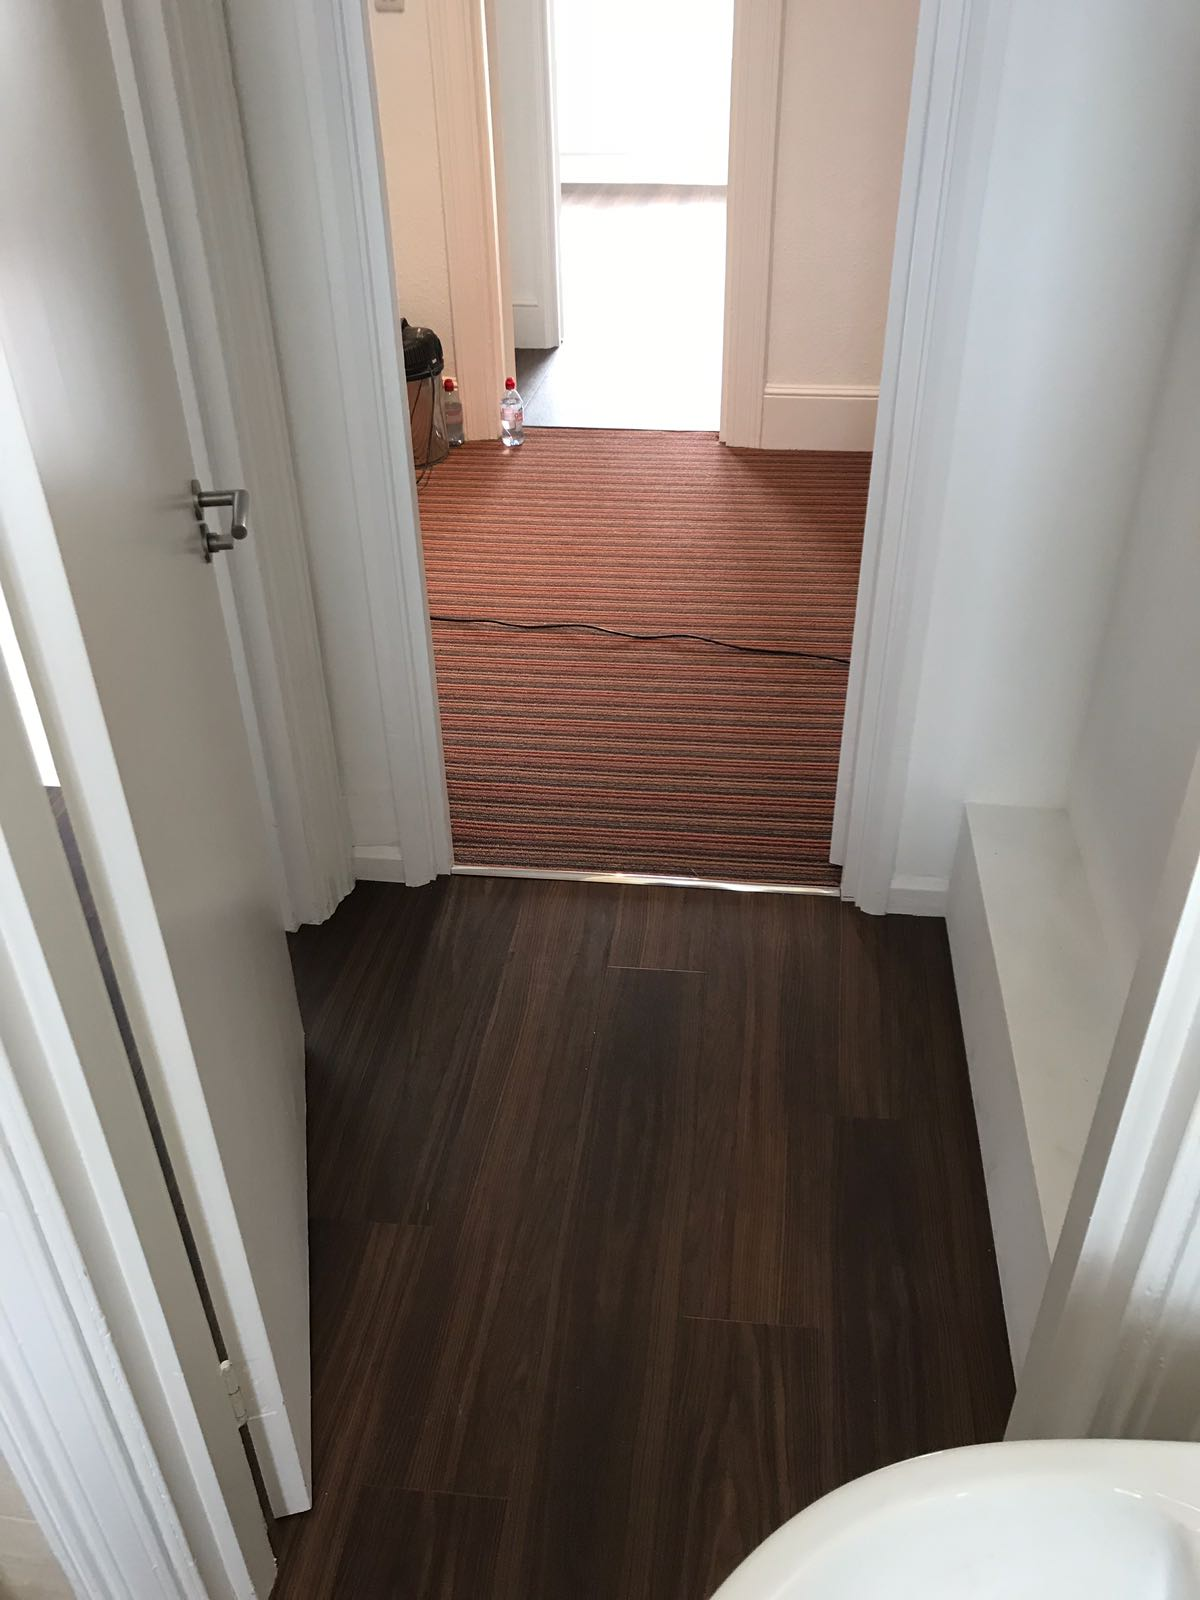 2018-04-24_Amtico Flooring Installed In Chelsea Residence (1)